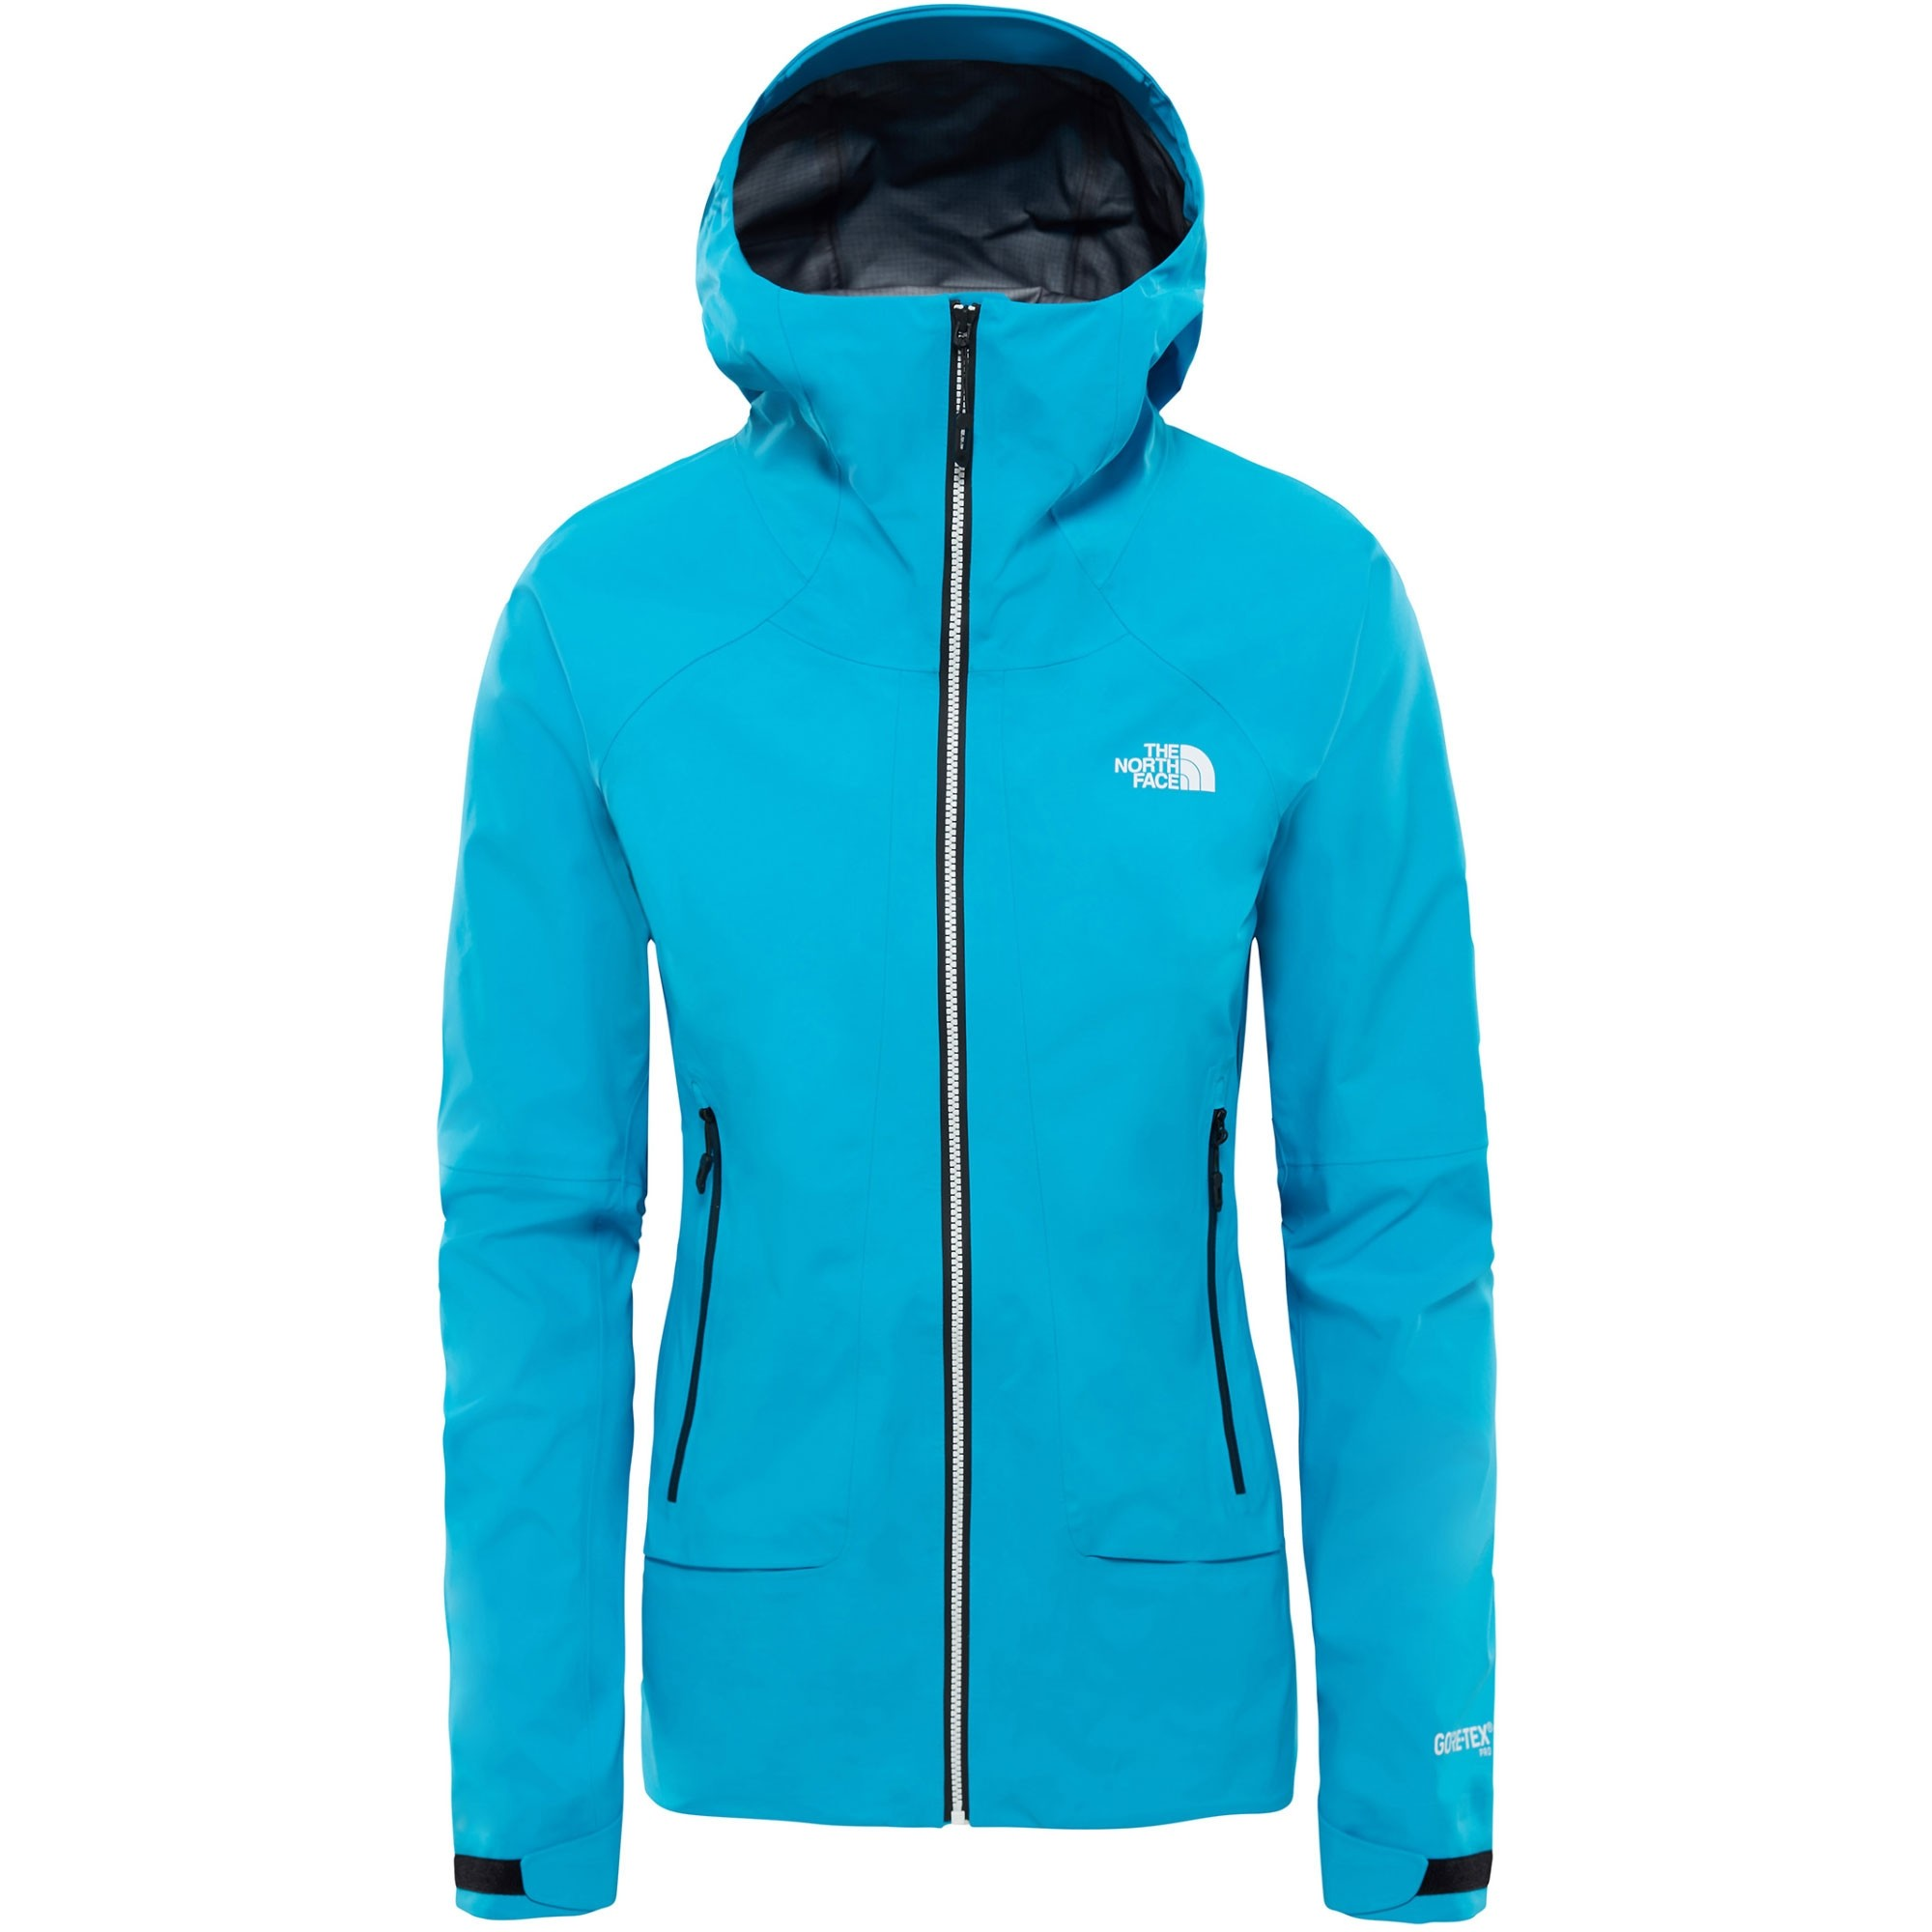 The North Face Impendor Shell Jacket - Meridian Blue